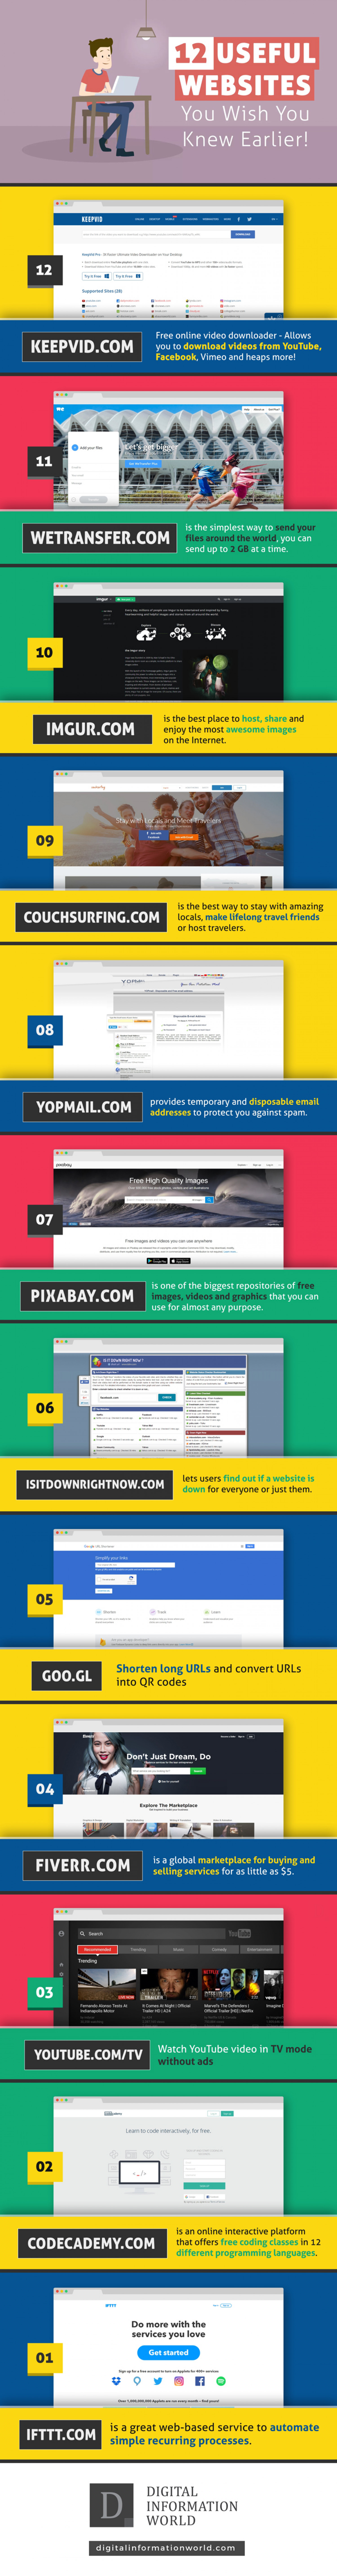 25 Incredibly Useful Websites You Wish You Knew Earlier Infographic